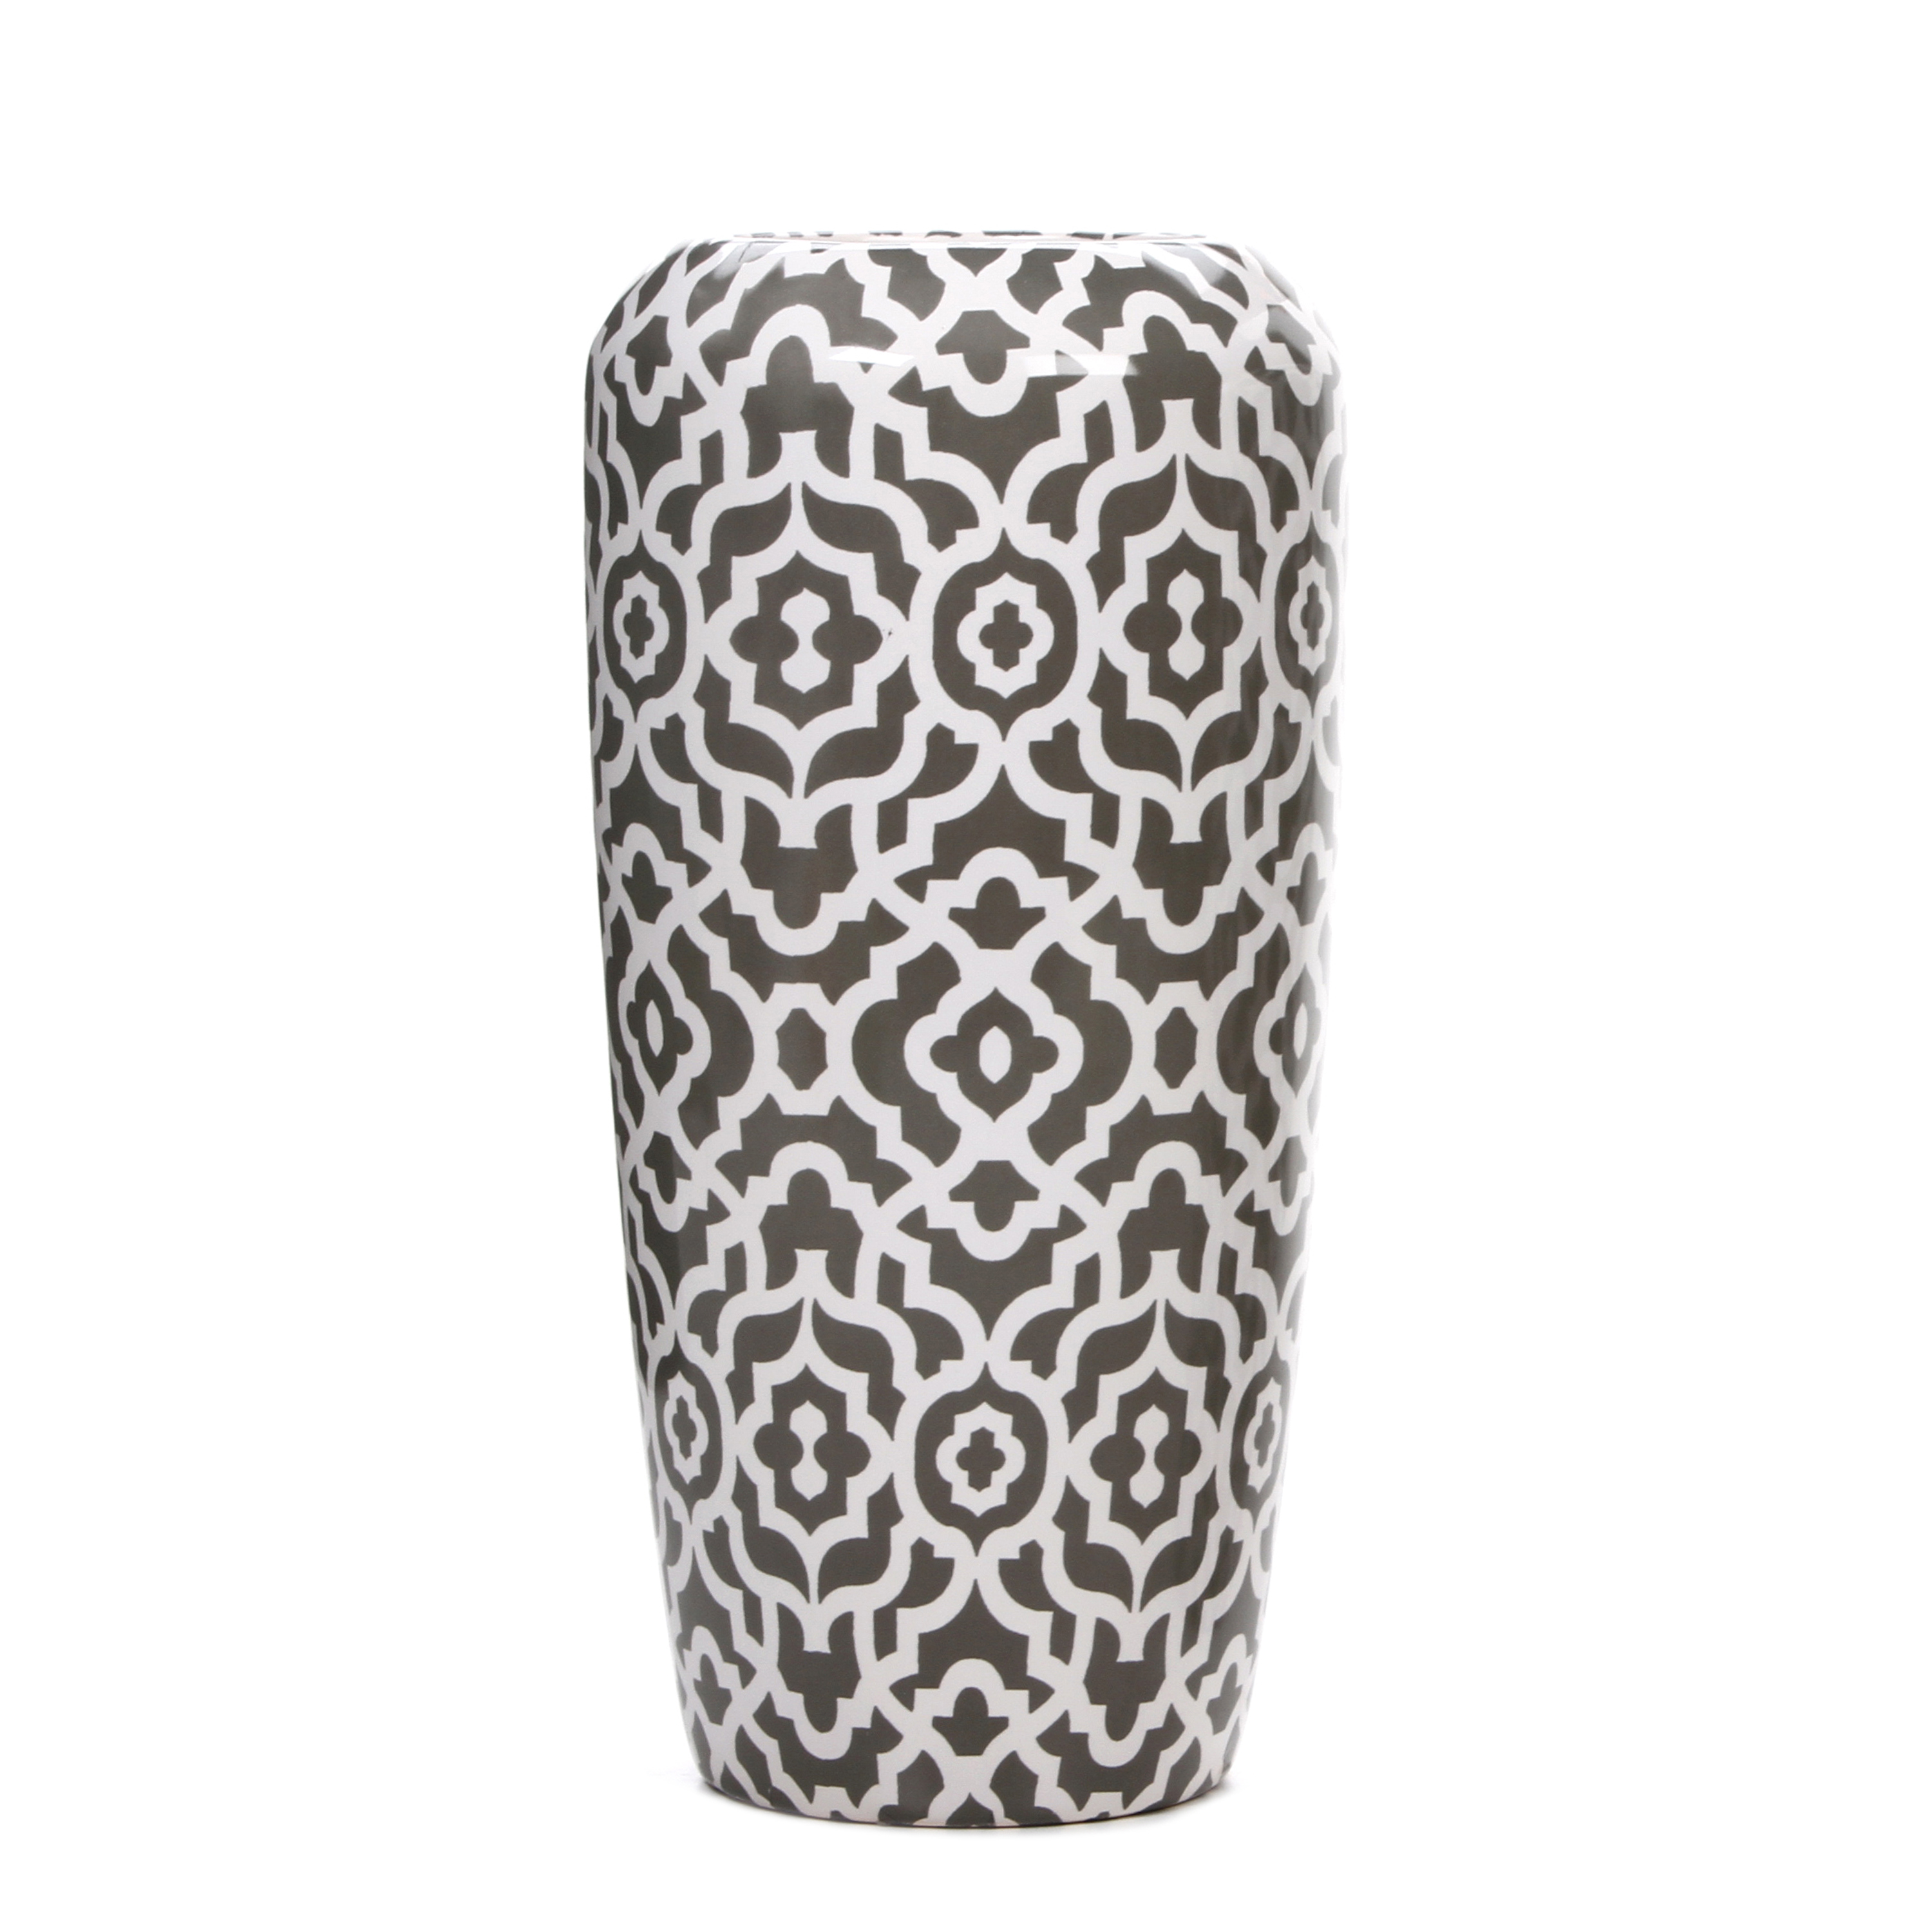 Waverly Inspirations Waverly Inspirations Lattice Vase